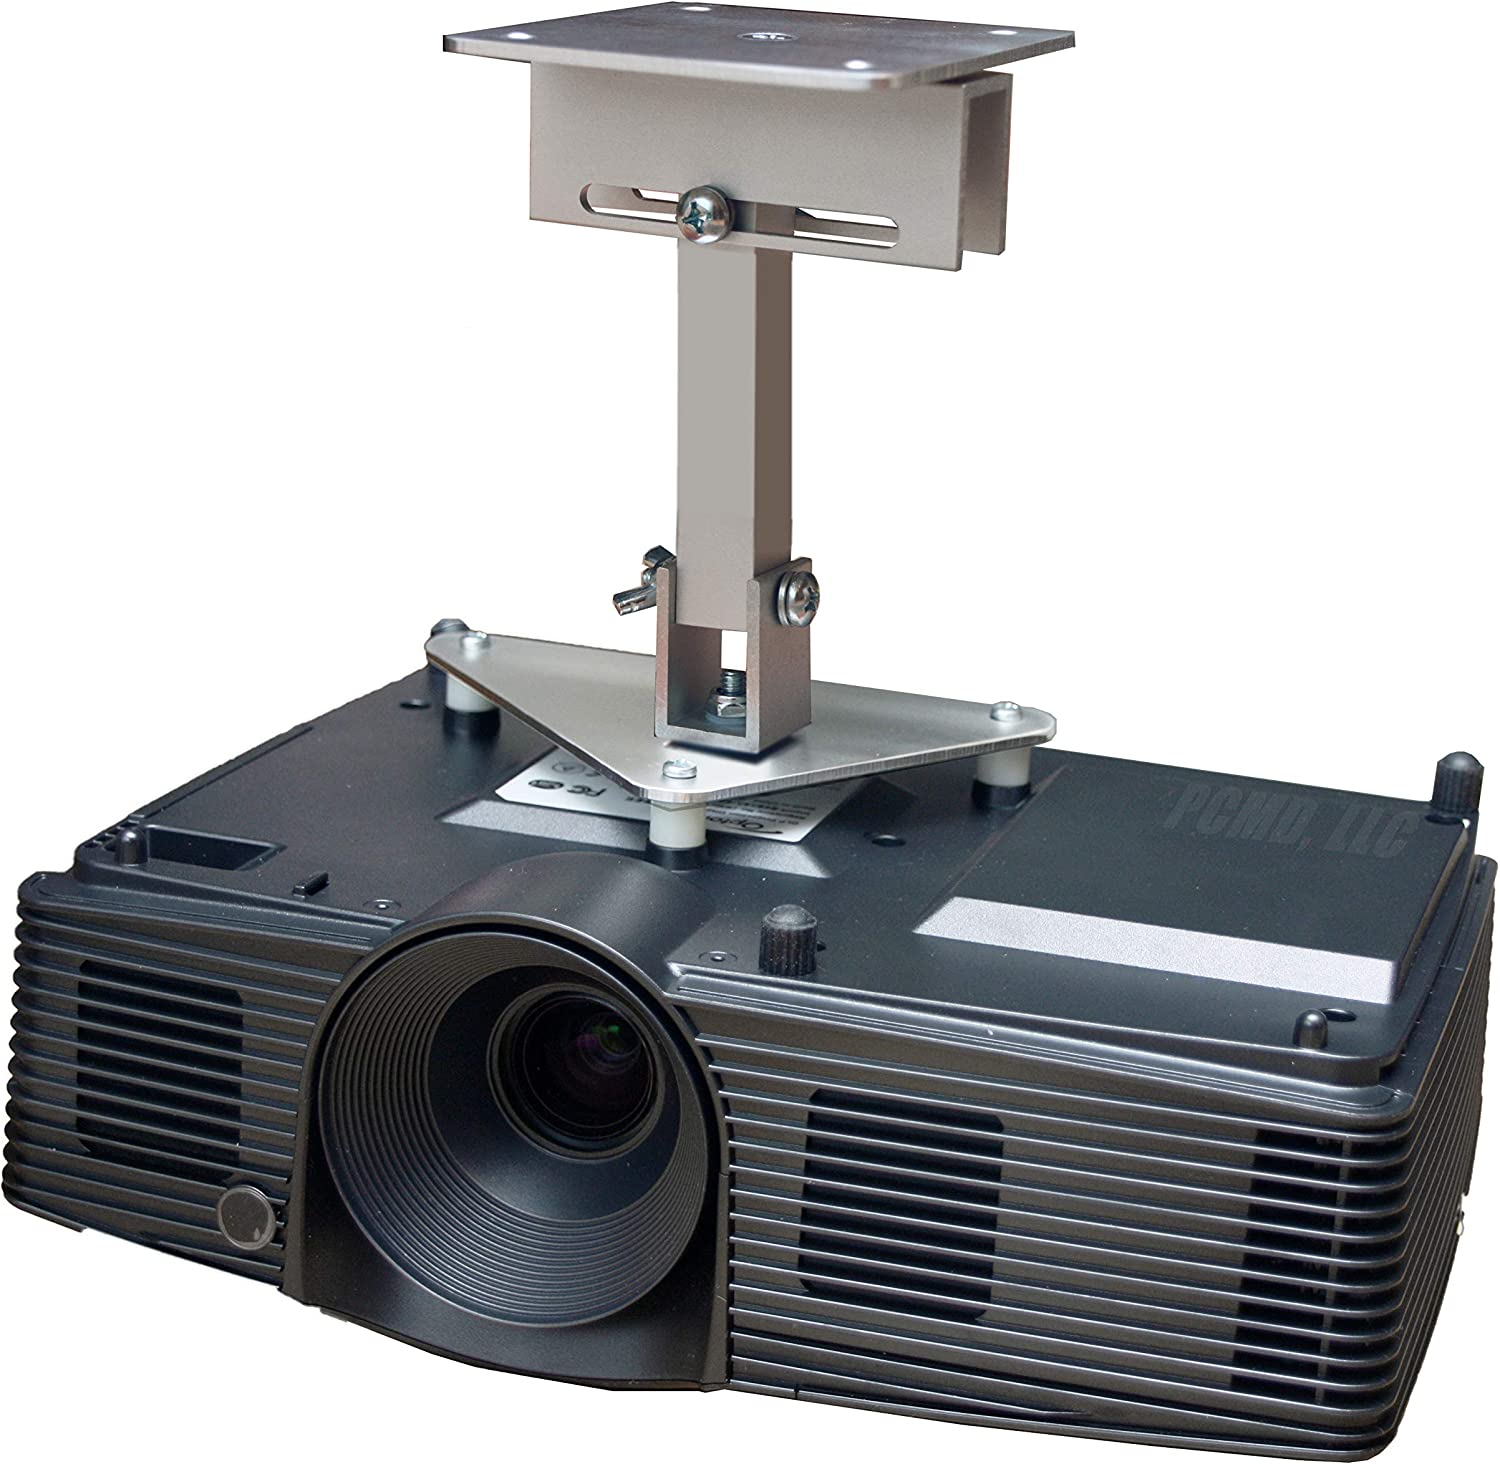 PCMD LLC. Projector Ceiling Mount Bombing free shipping Compatible Dukane ImageP Regular dealer with